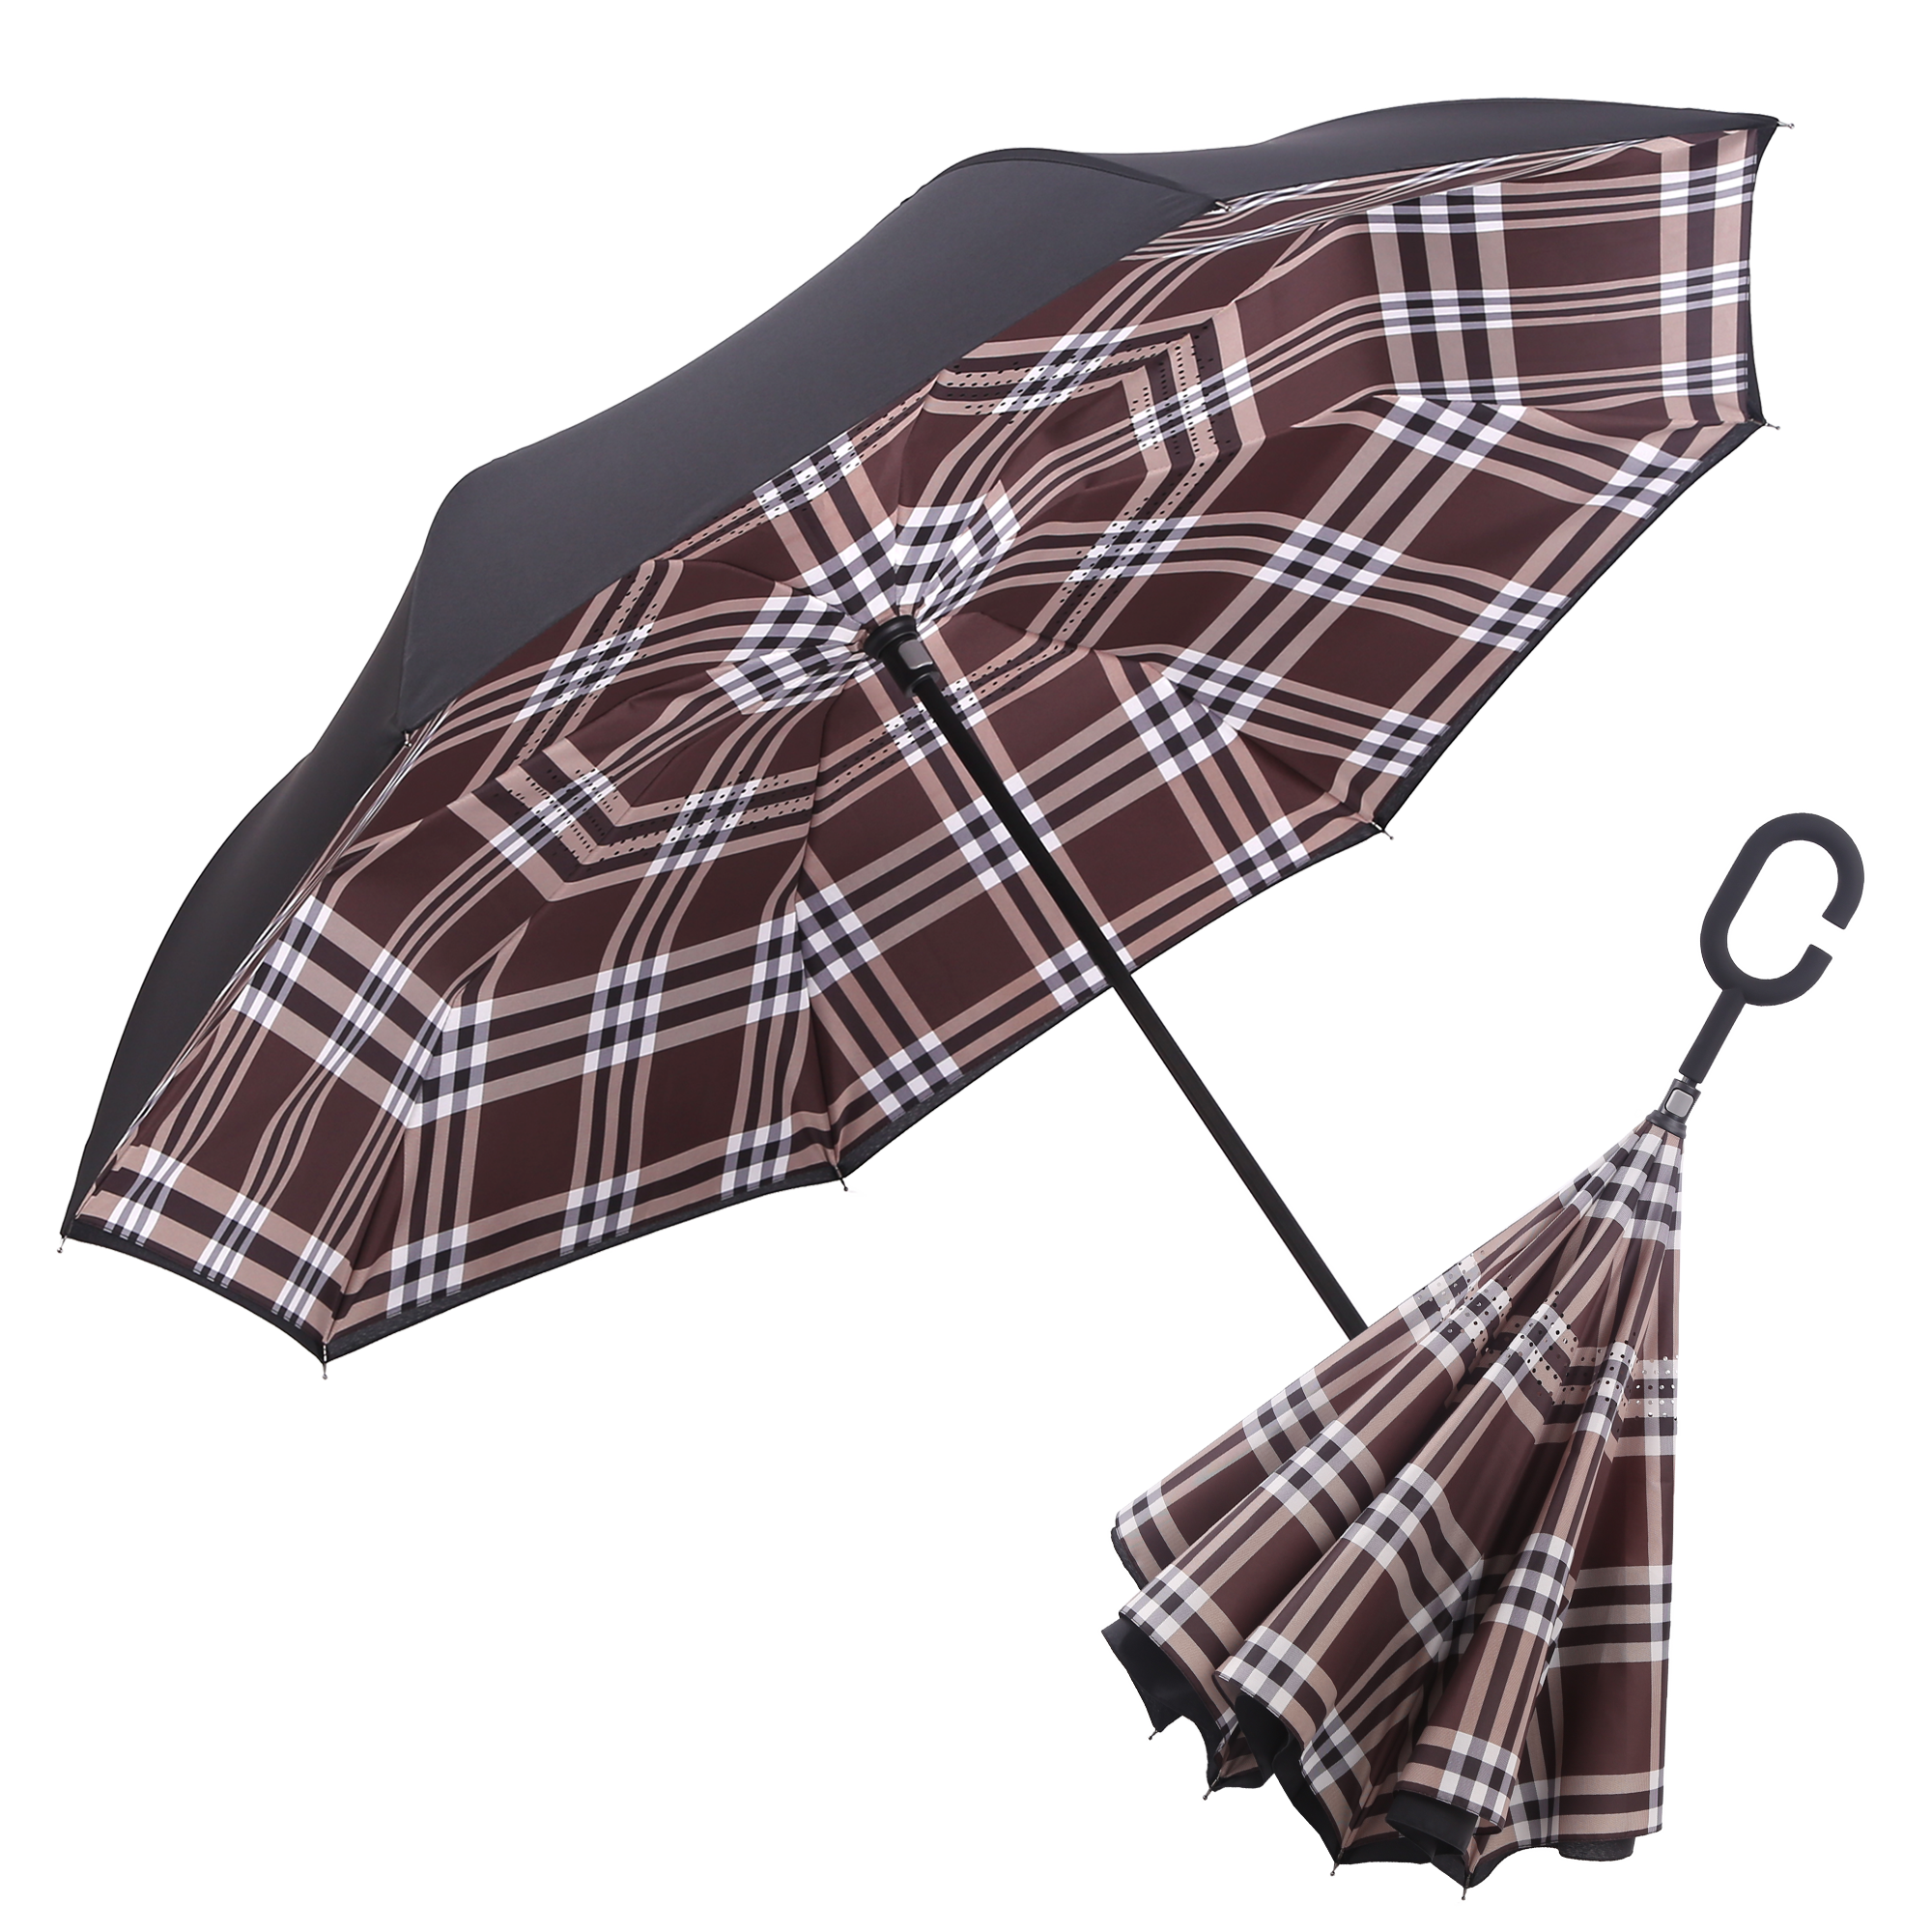 RAINCAPER BLACK/COCO PLAID REVERSE UMBRELLA